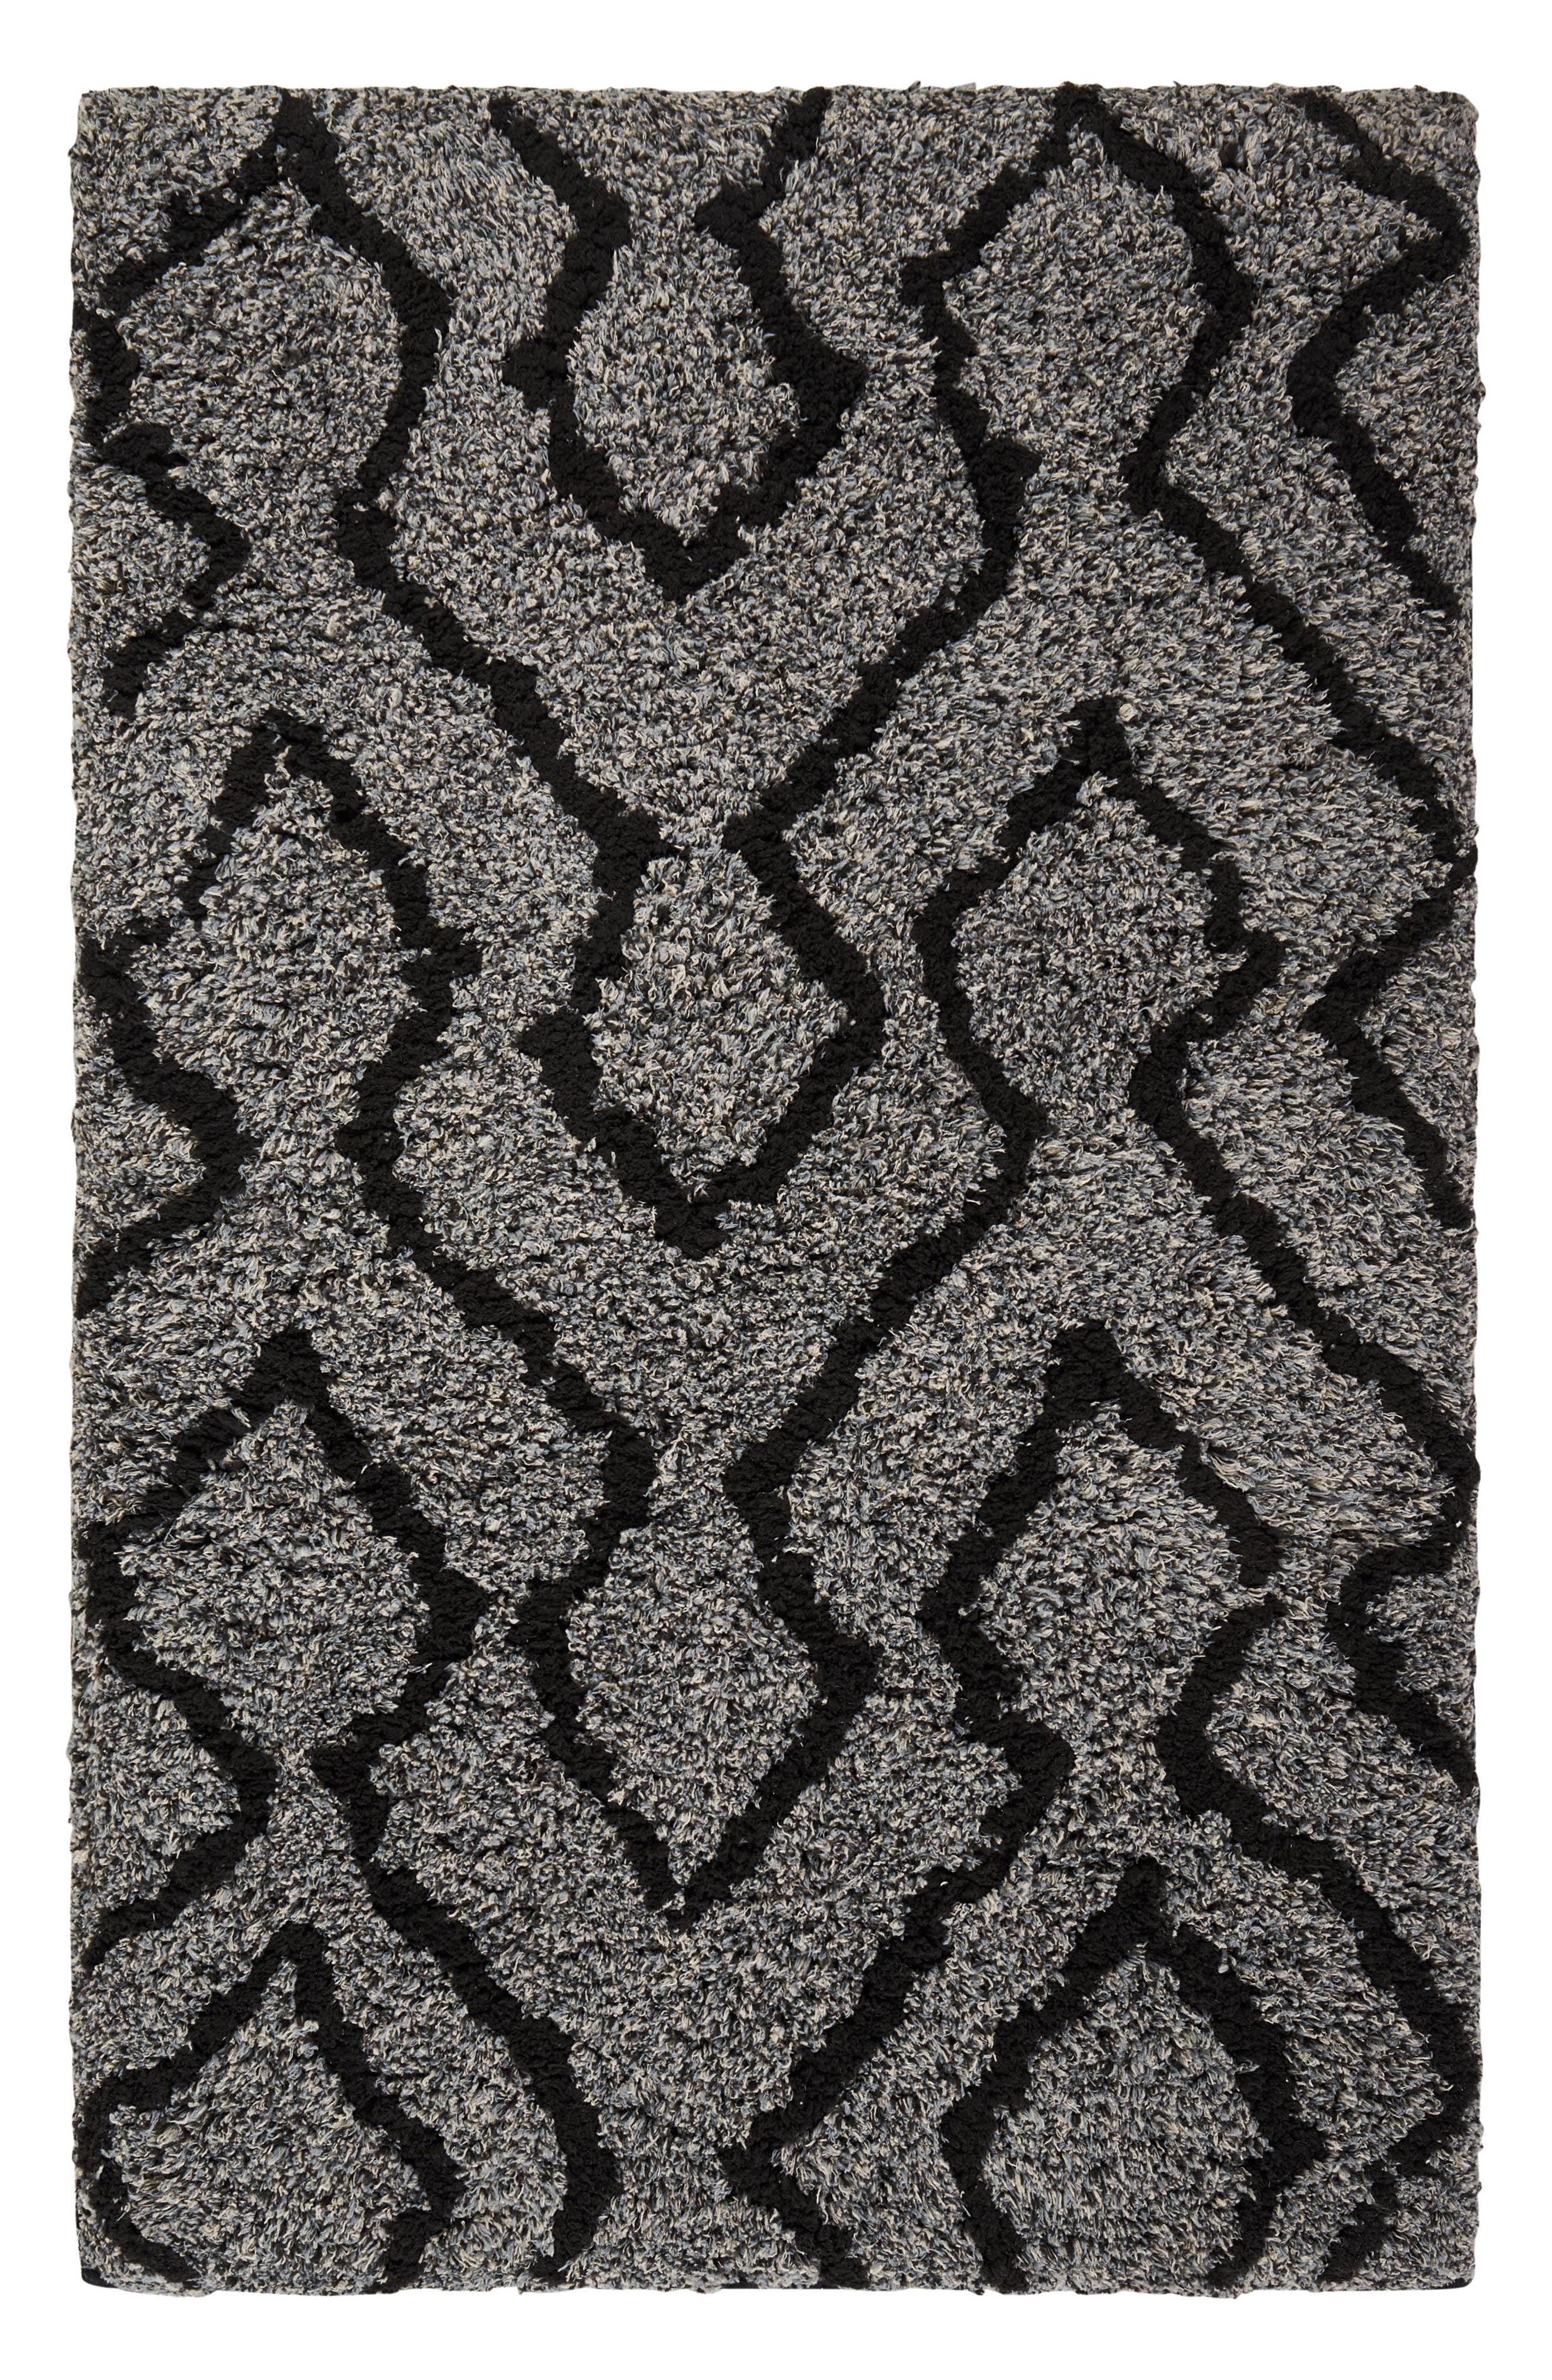 Channel Rug,                         Main,                         color, 020